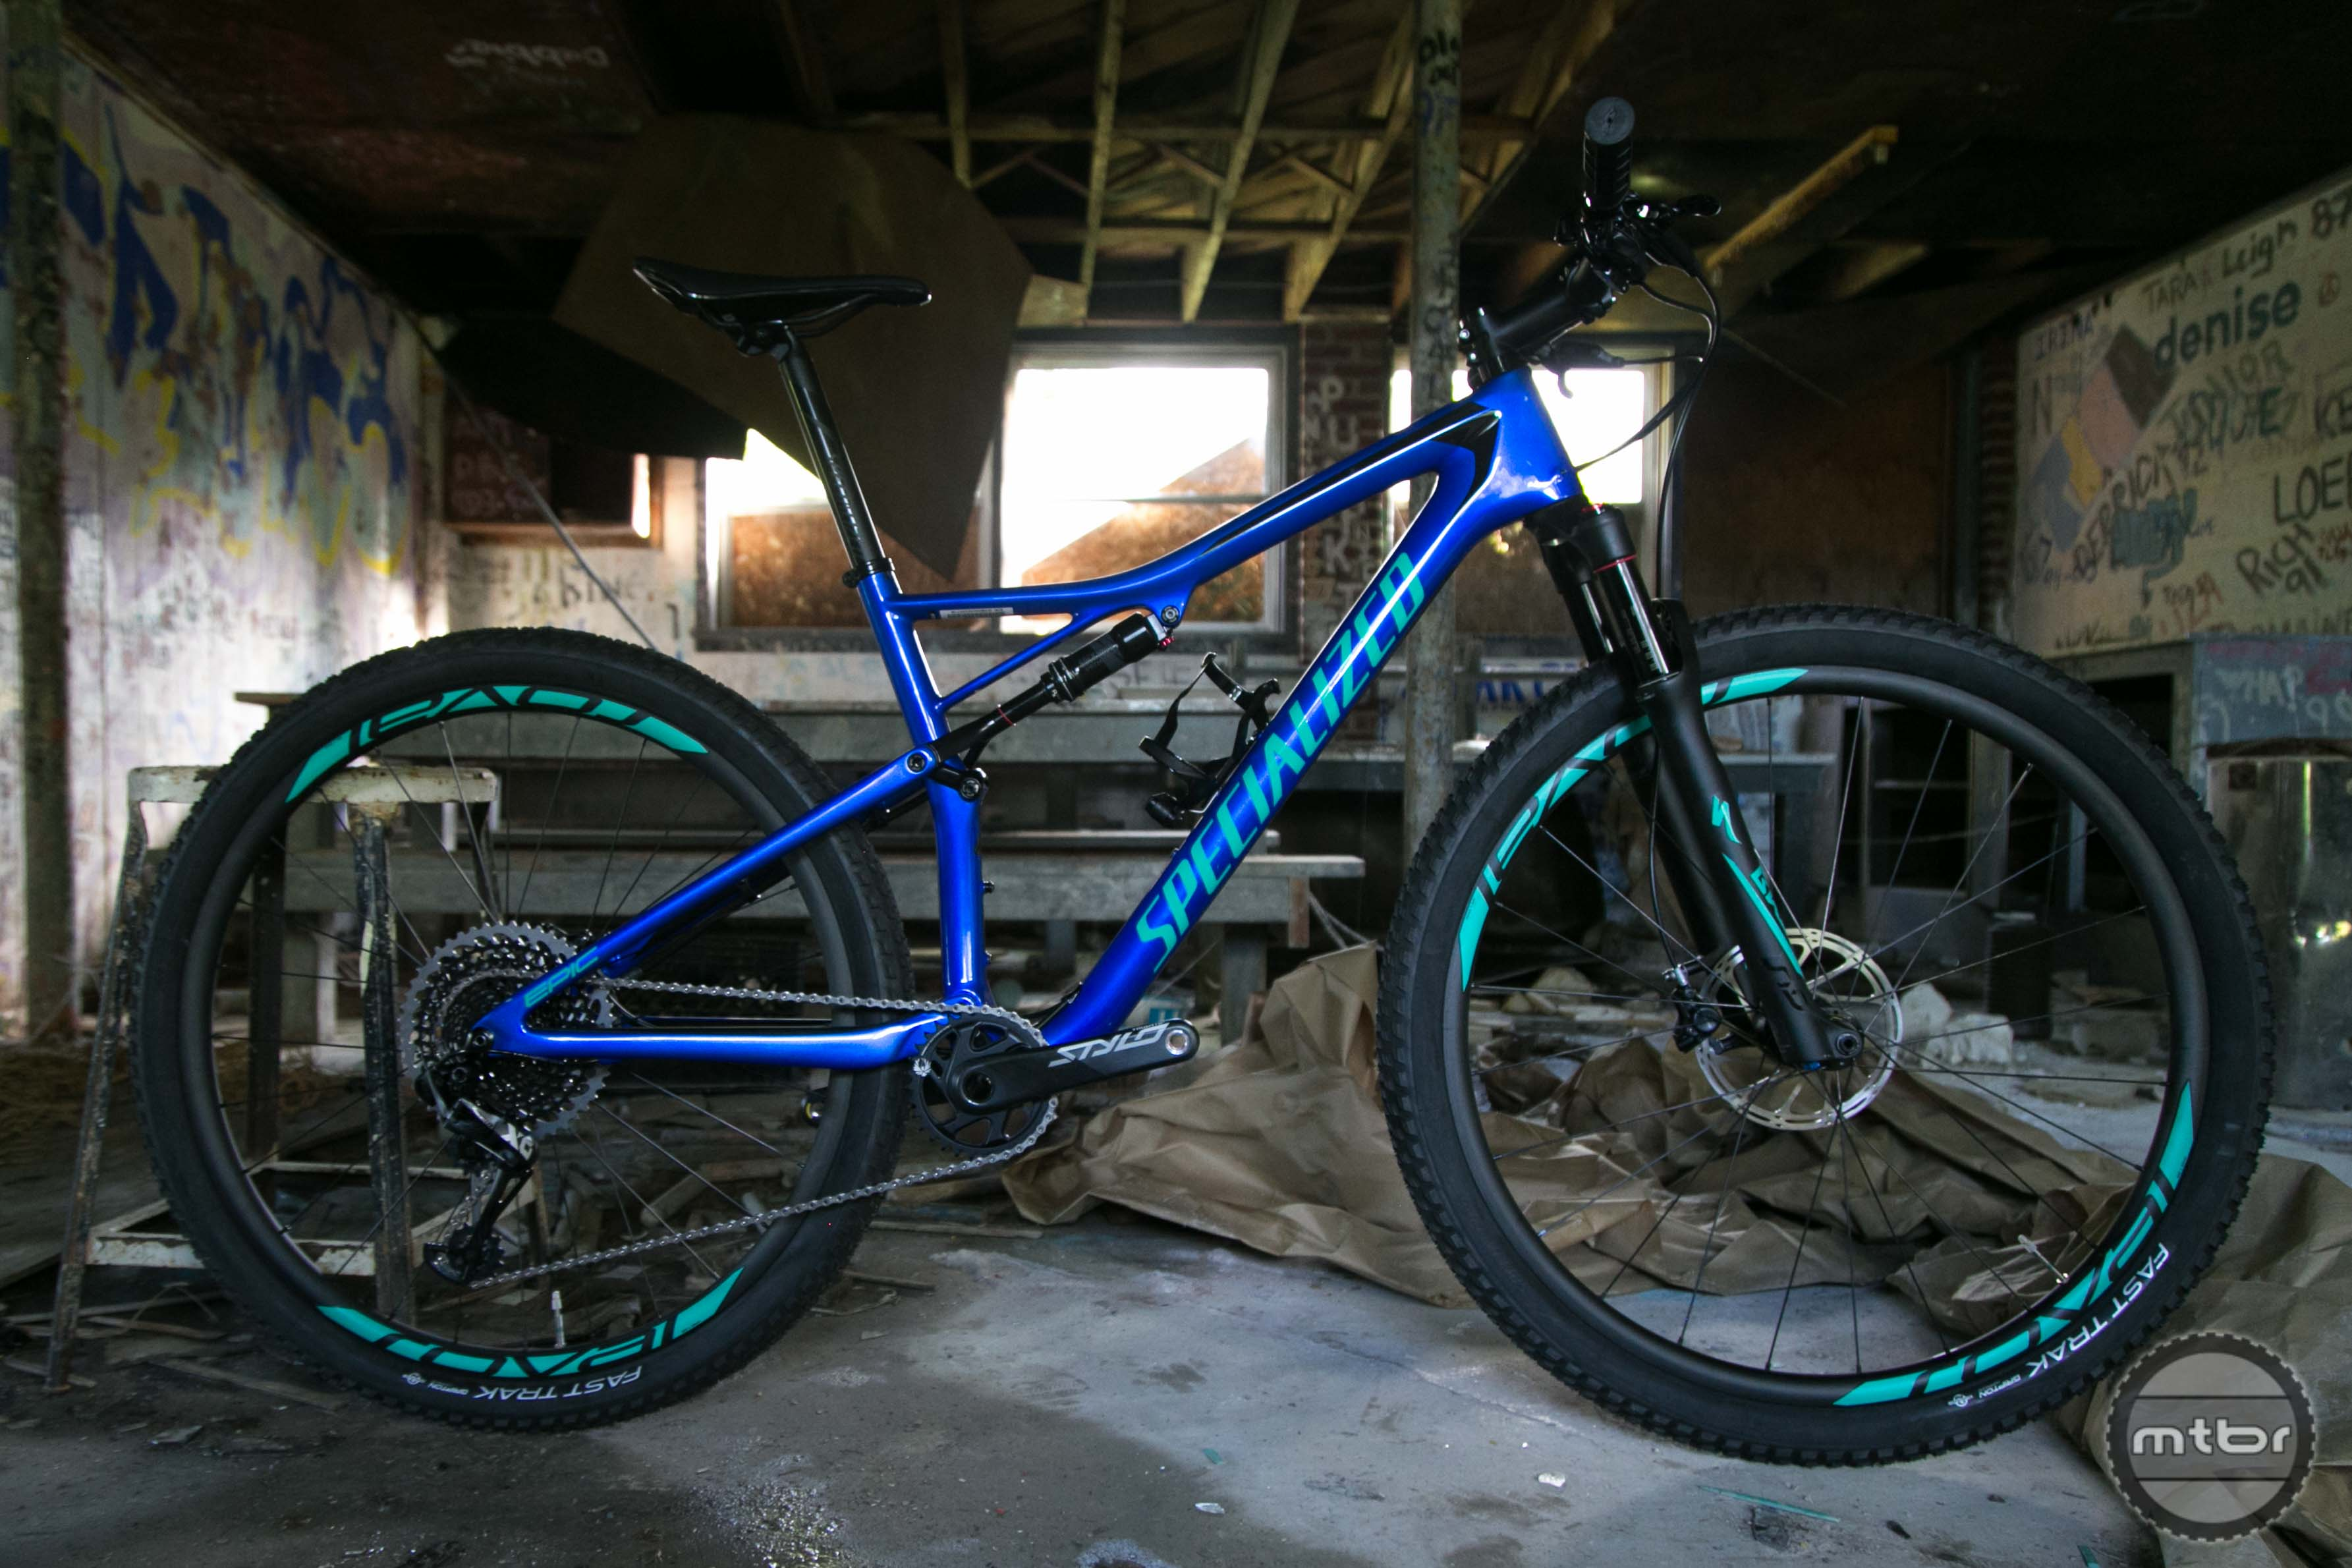 The Epic has been a mainstay in the Specialized lineup for fifteen years.